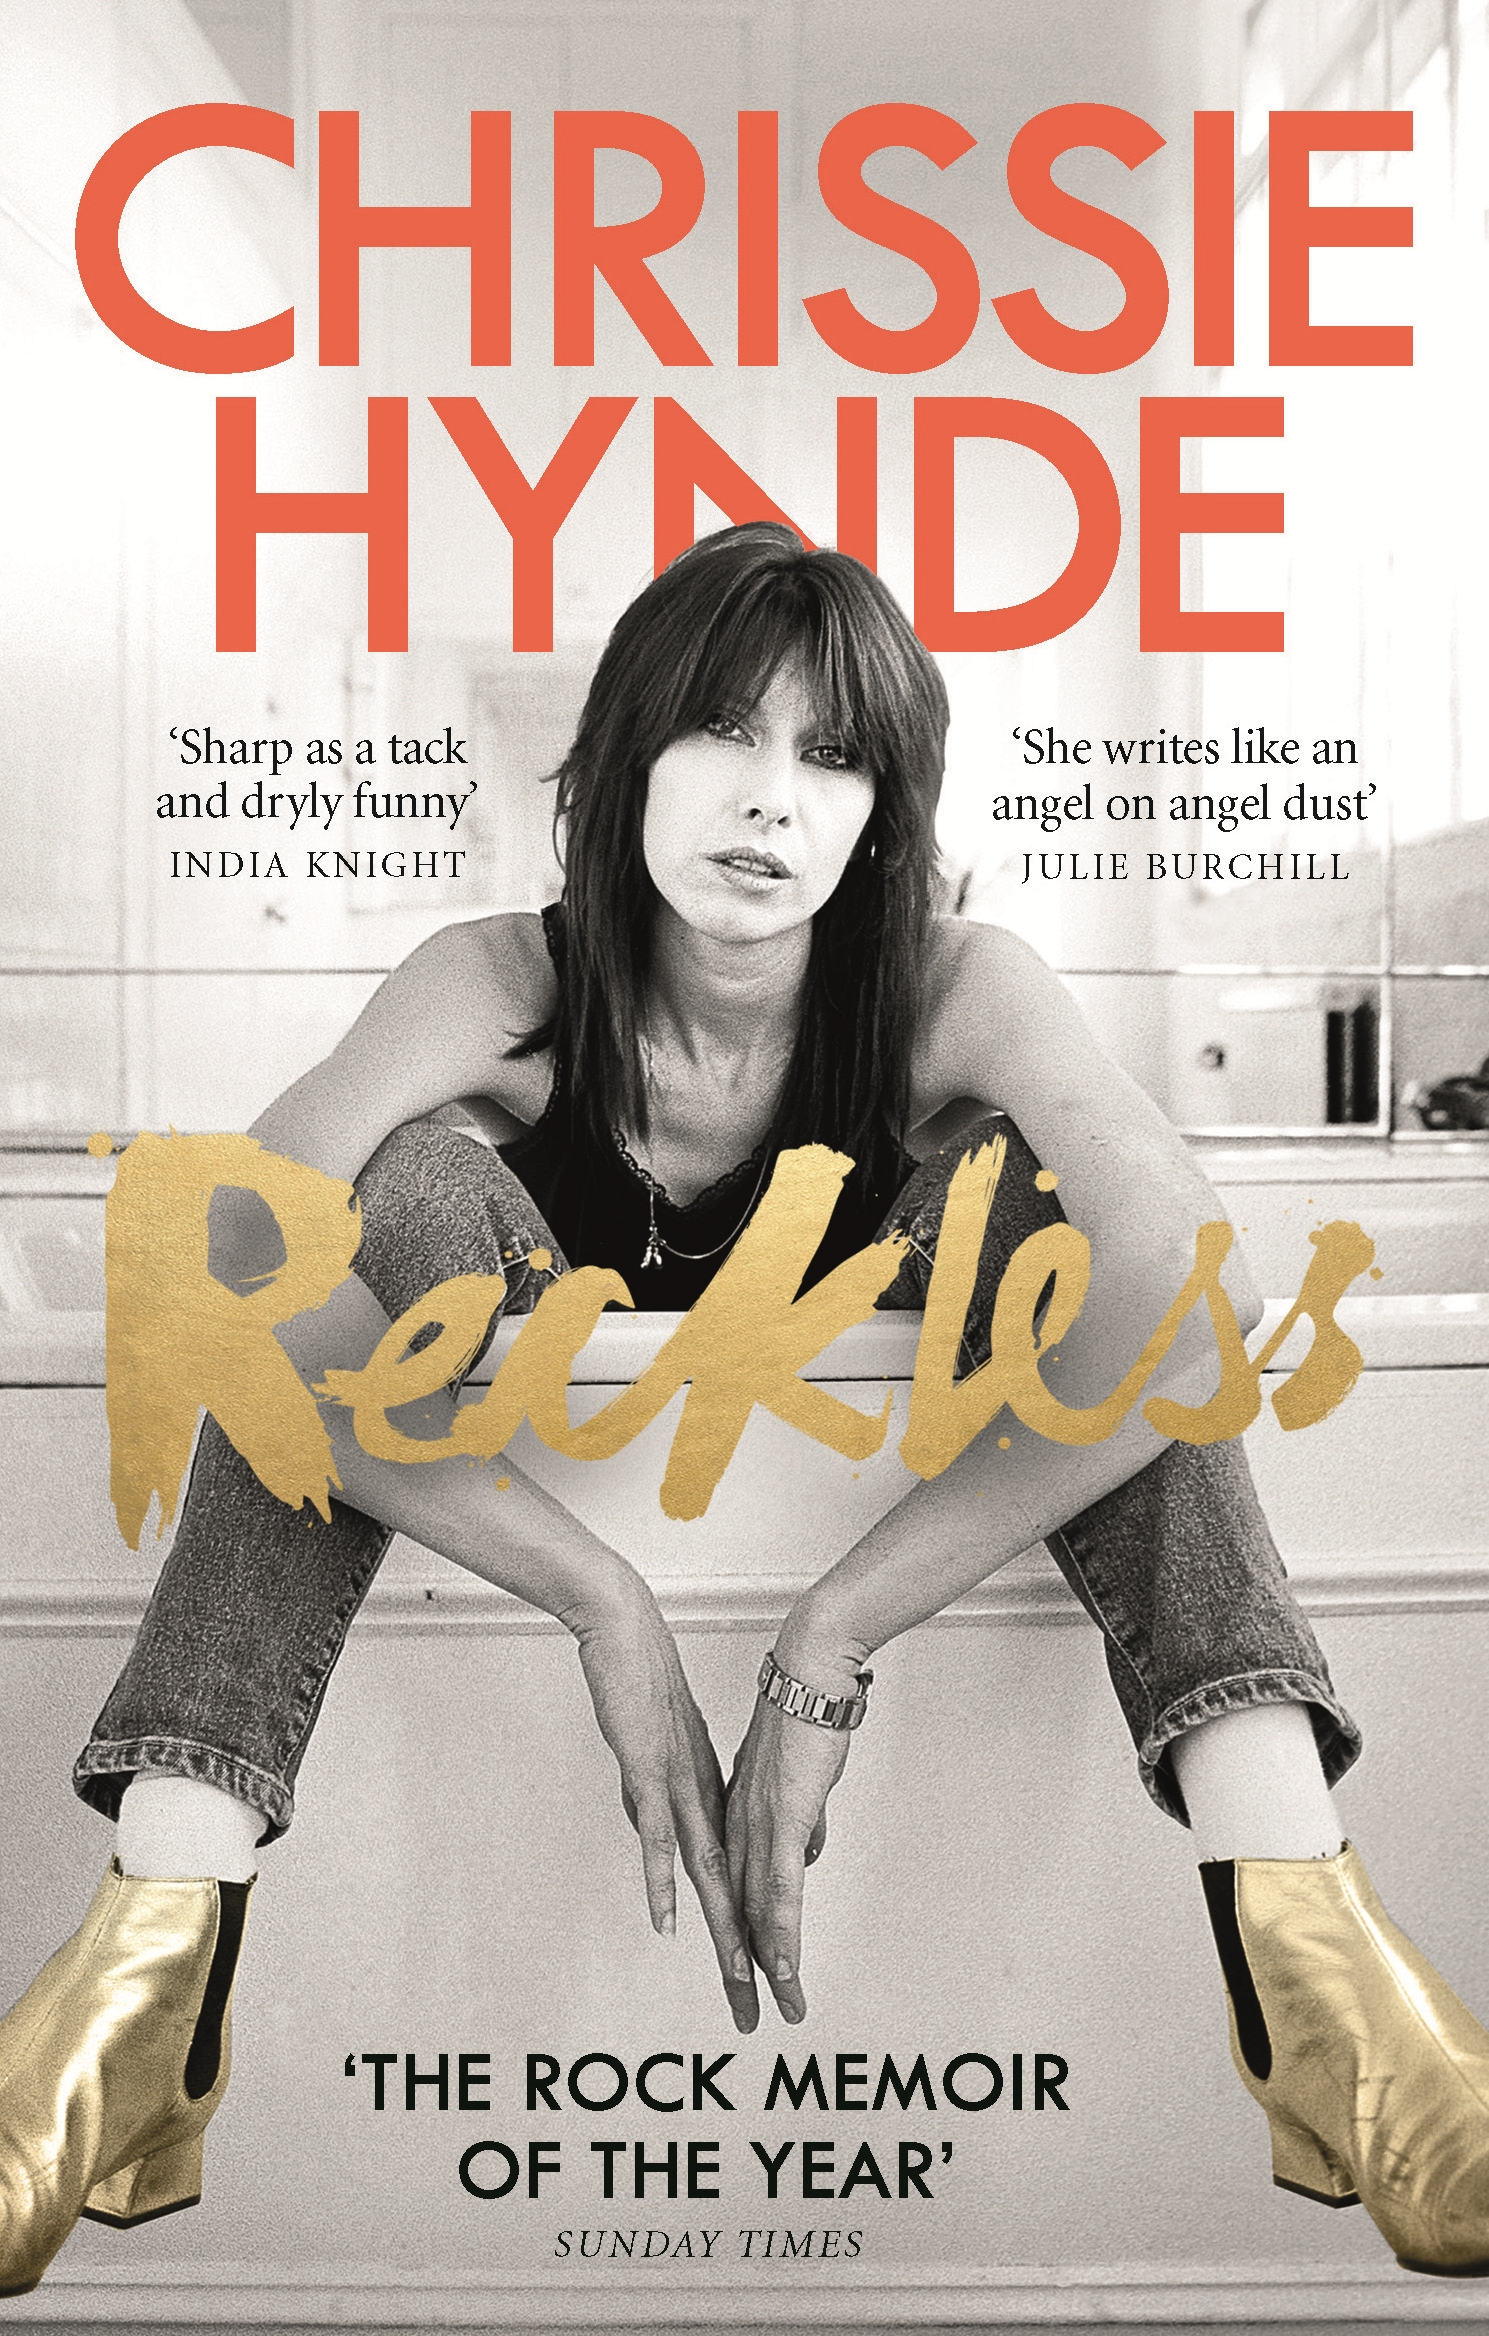 Reckless by Chrissie Hynde - Penguin Books Australia